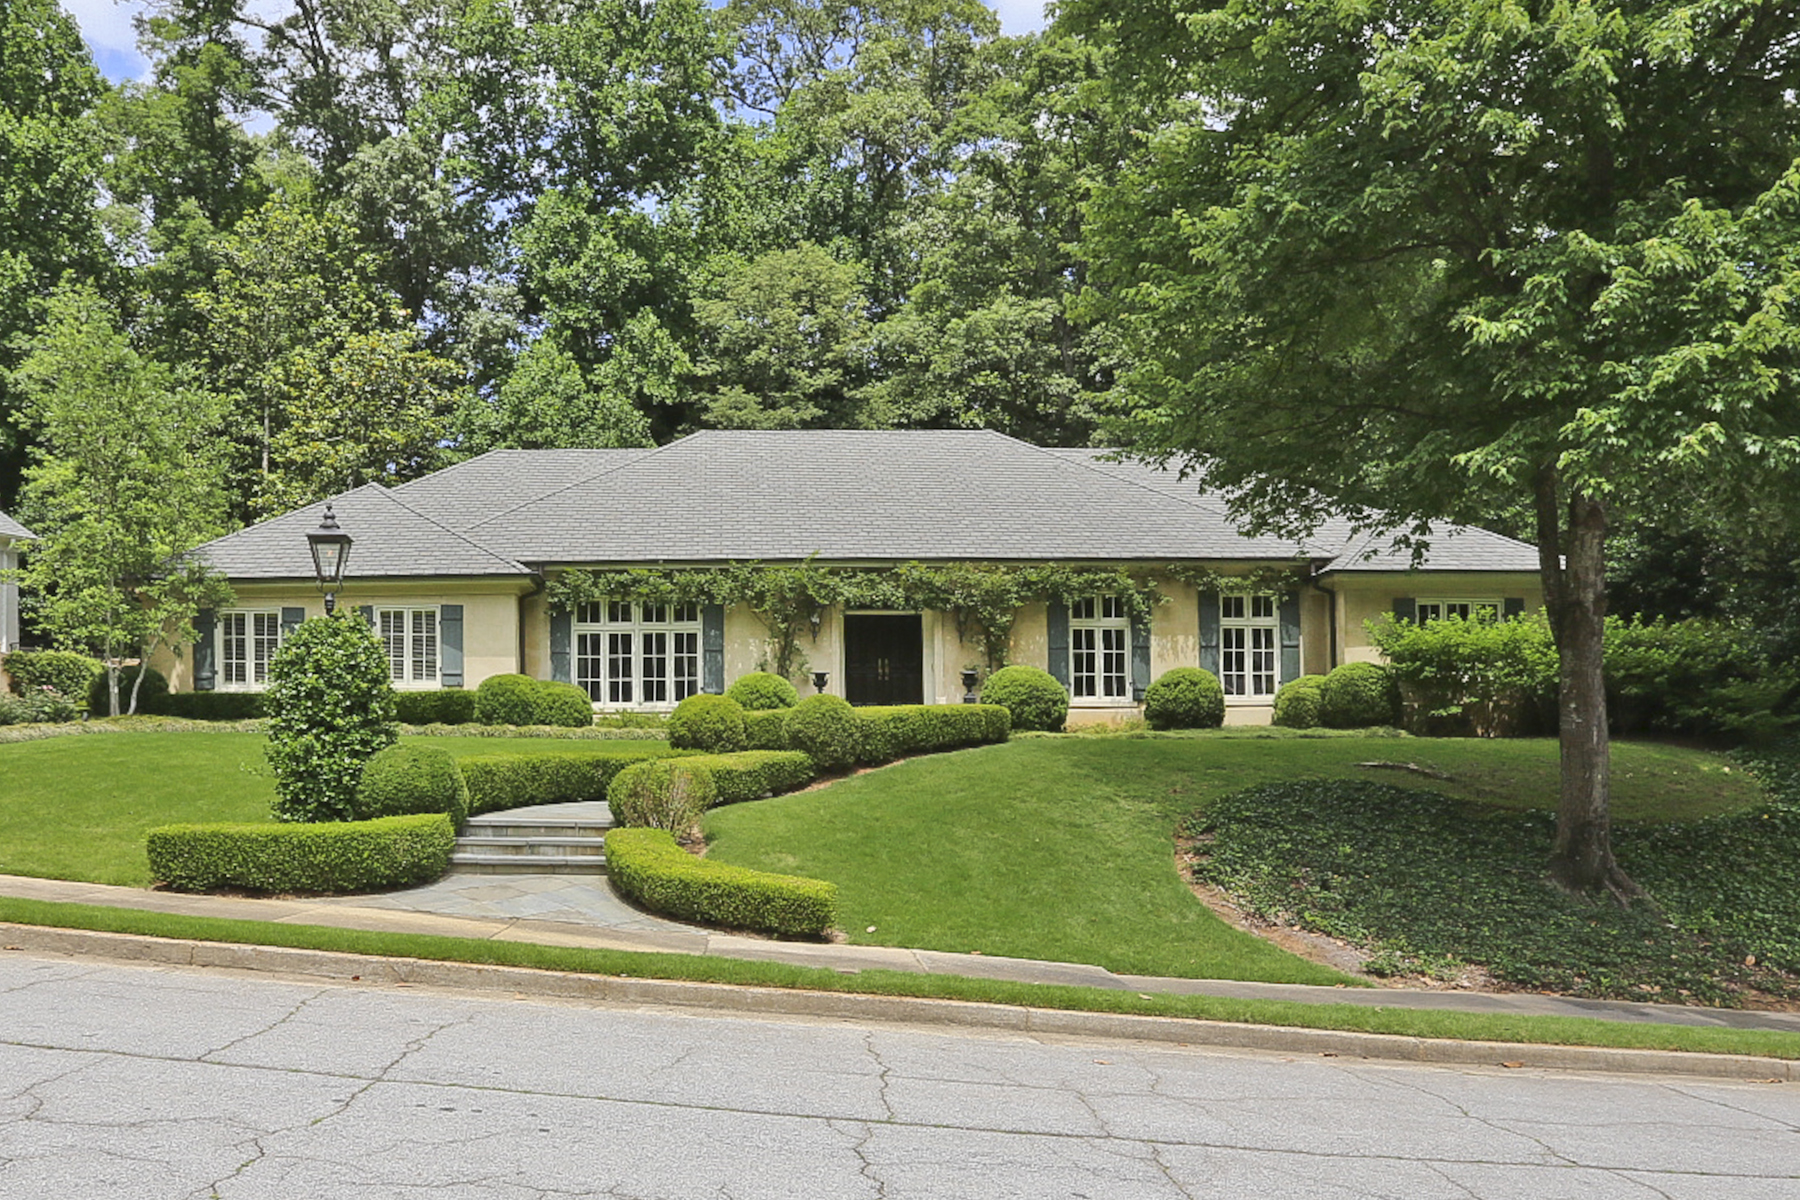 独户住宅 为 销售 在 European Garden Home And Convenient Buckhead Location 3417 West Paces Ferry Court Atlanta, 乔治亚州 30327 美国